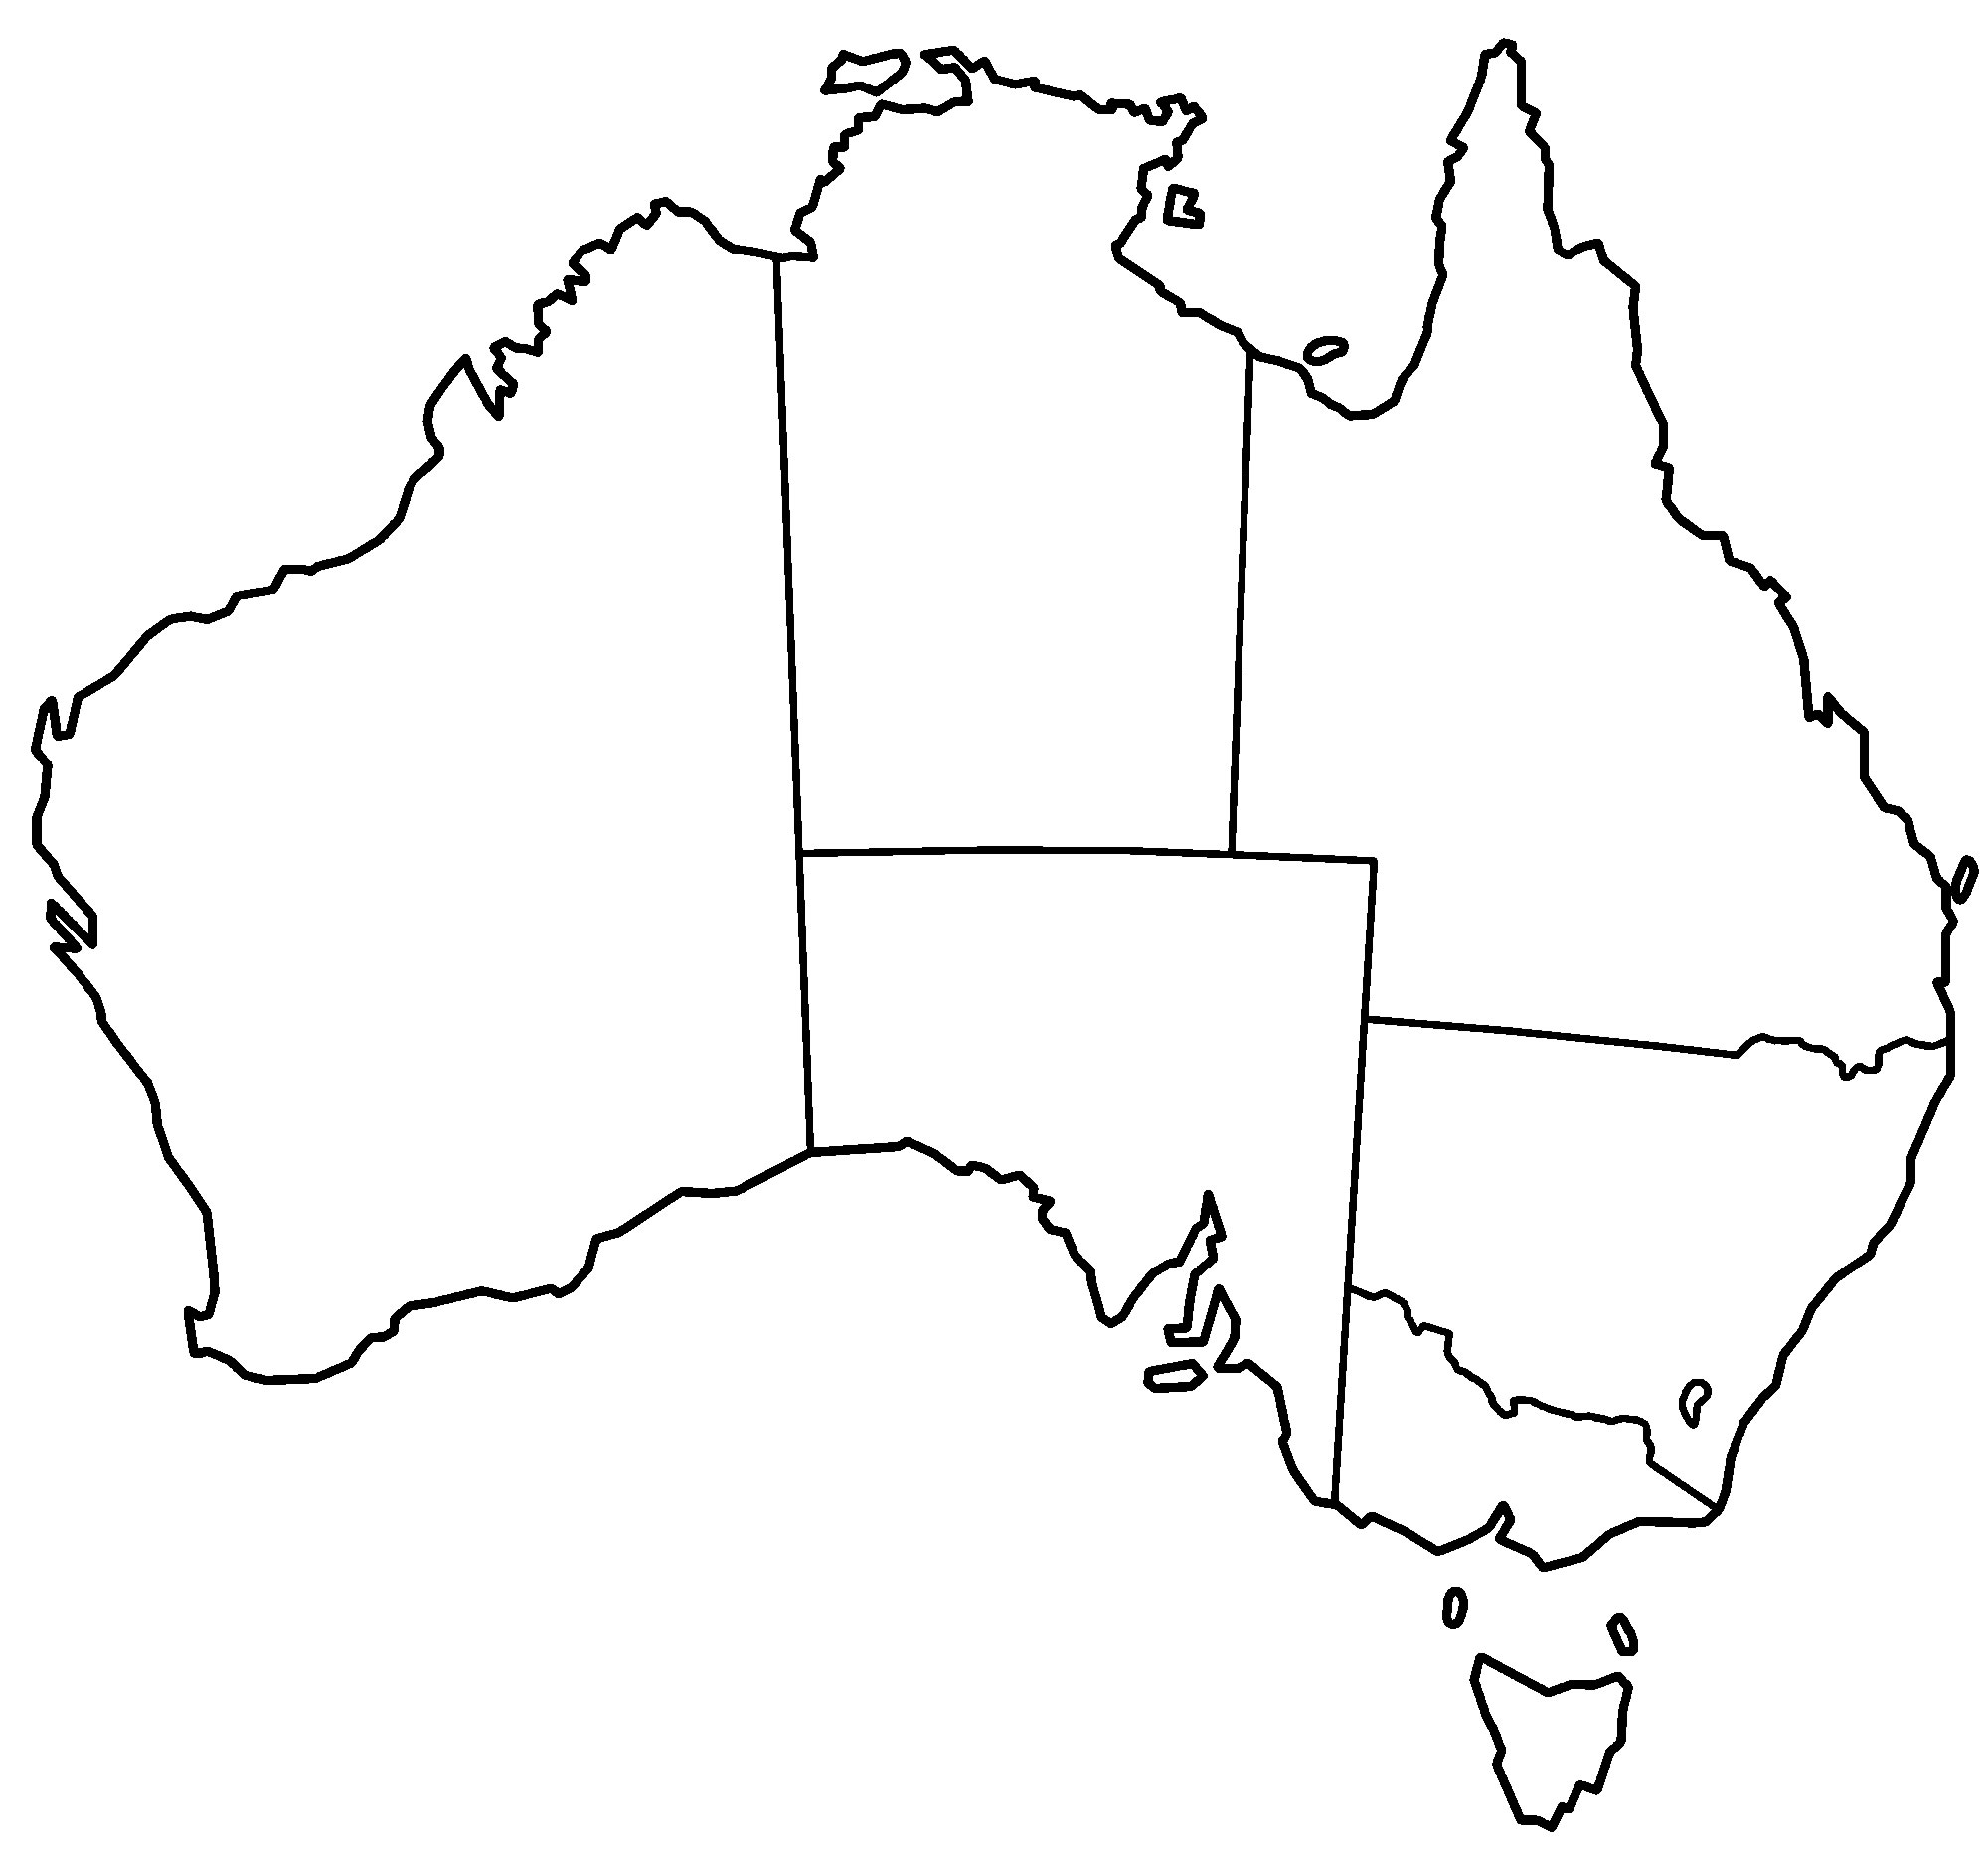 Drawing Lines Shapes Or Text On Bitmaps : Carte australie vierge régions des